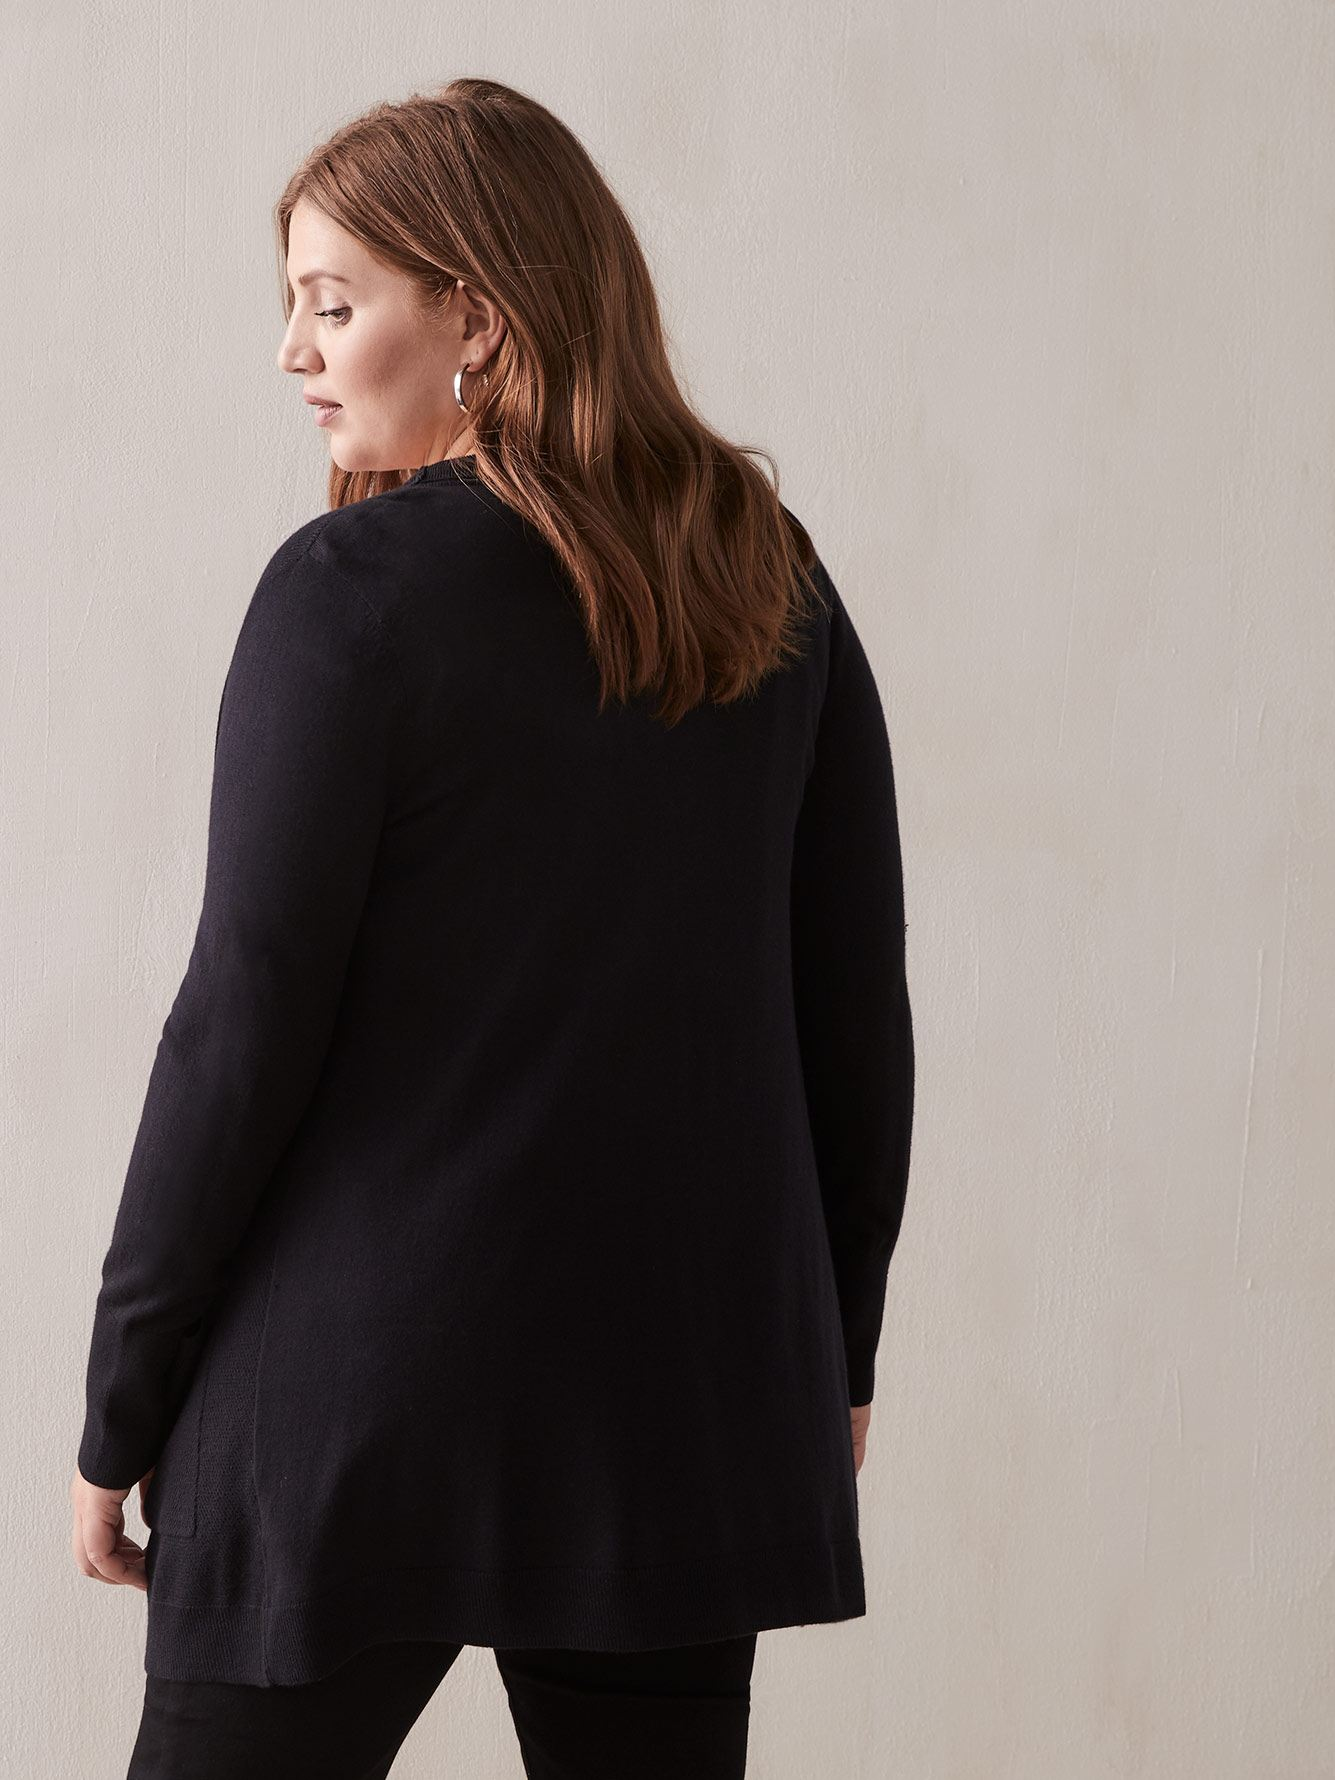 Black Cardigan Sweater - Addition Elle